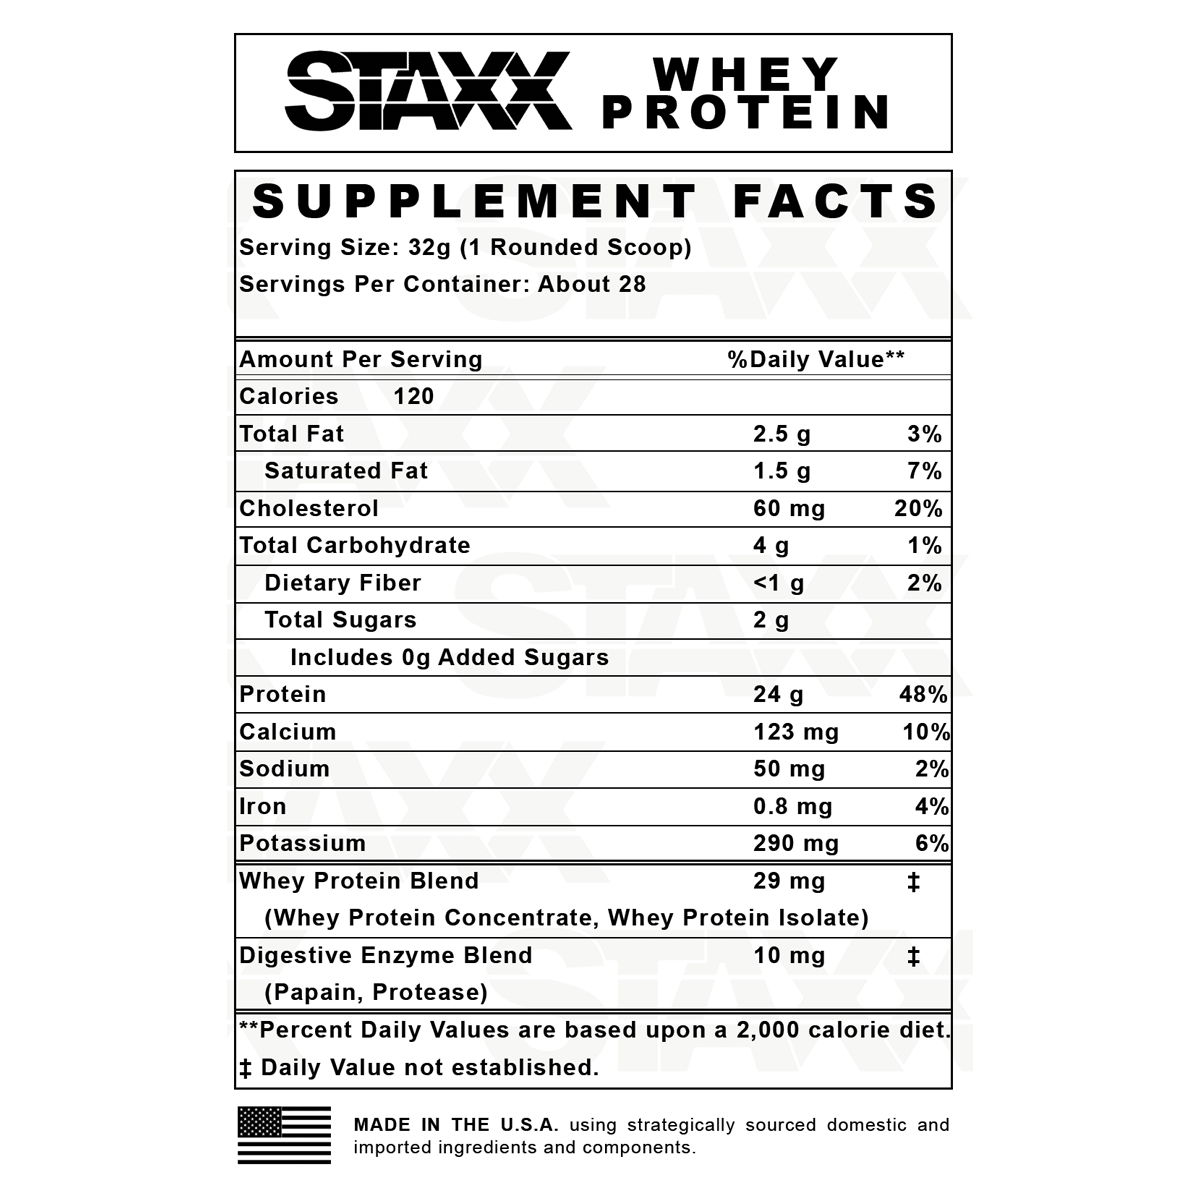 STAXX Whey Protein Nutrition Facts